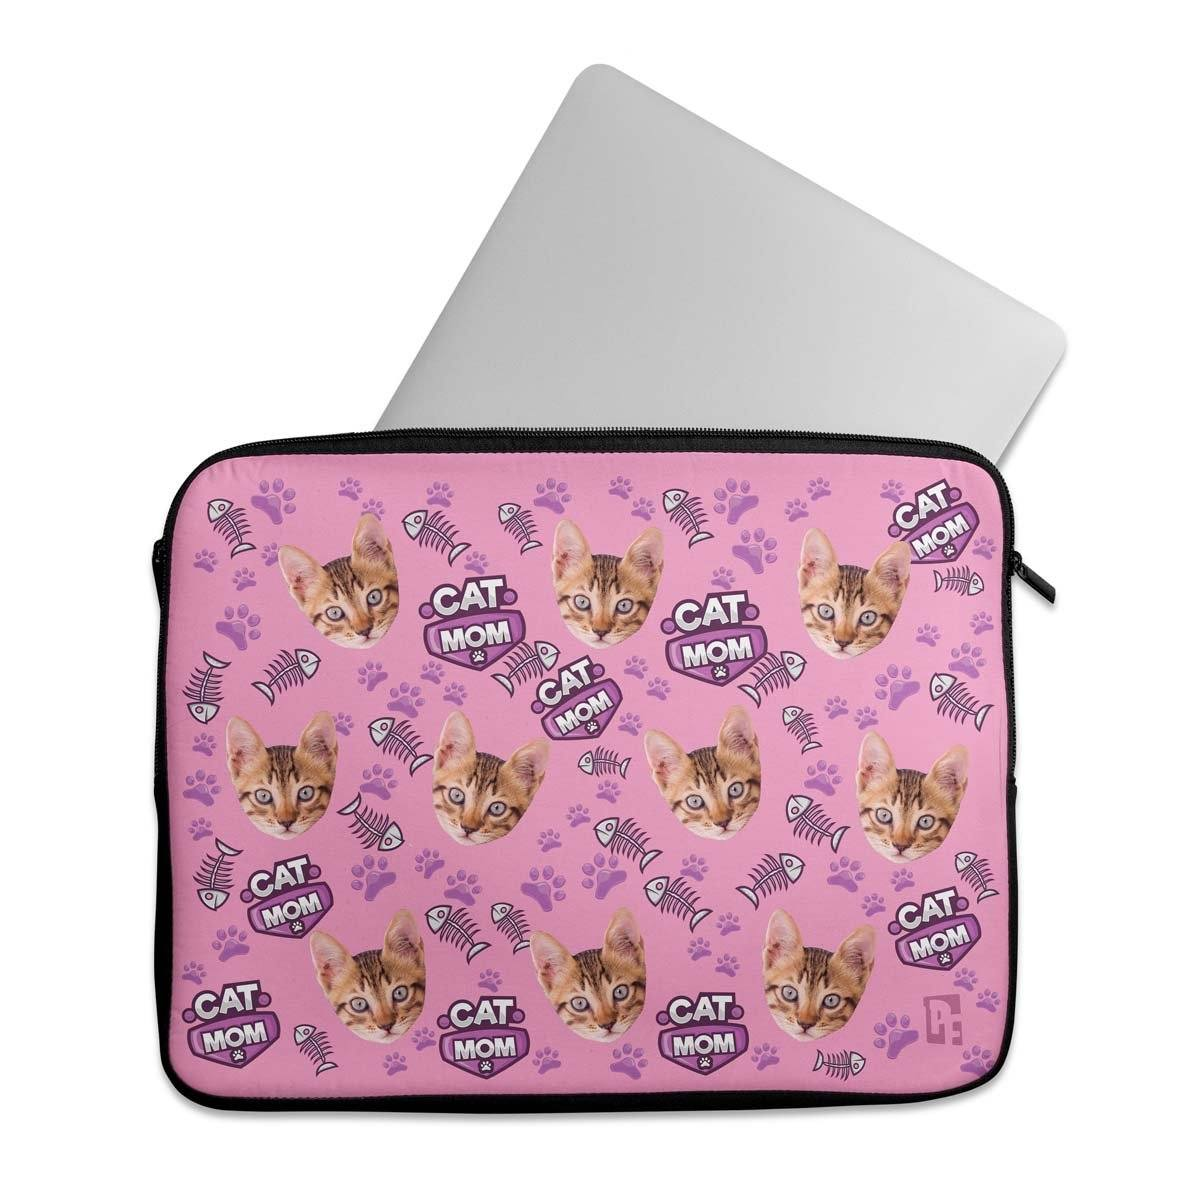 Cat Mom Personalized Laptop Sleeve